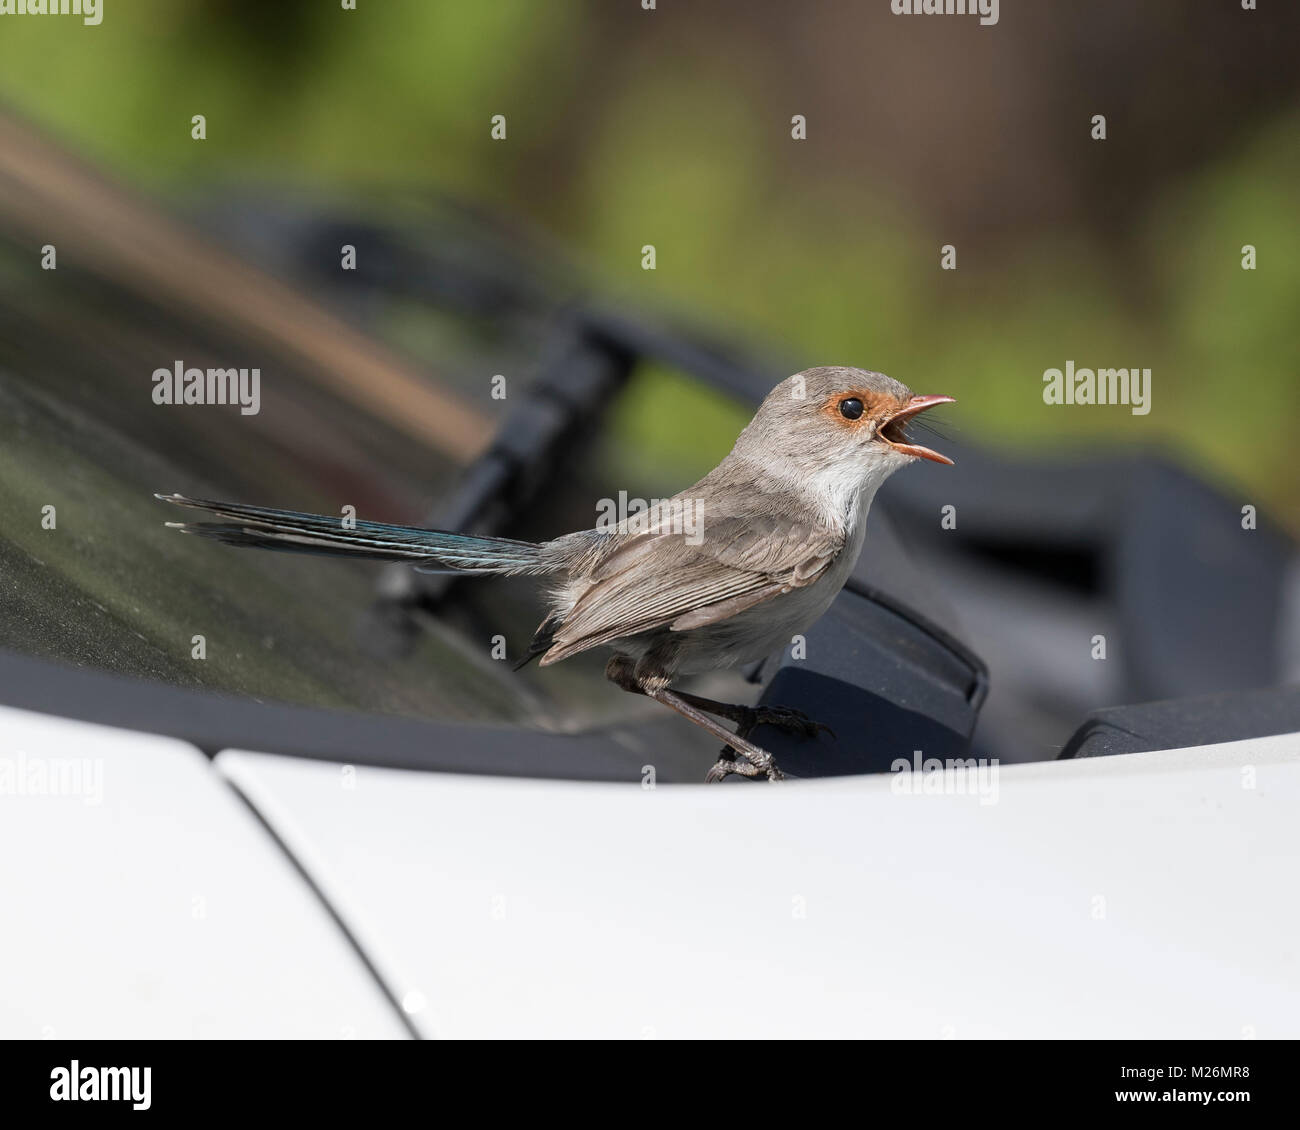 A female Splendid Fairy-wren (Malurus splendens) sings out after attacking its reflection in a car windscreen - - Stock Image